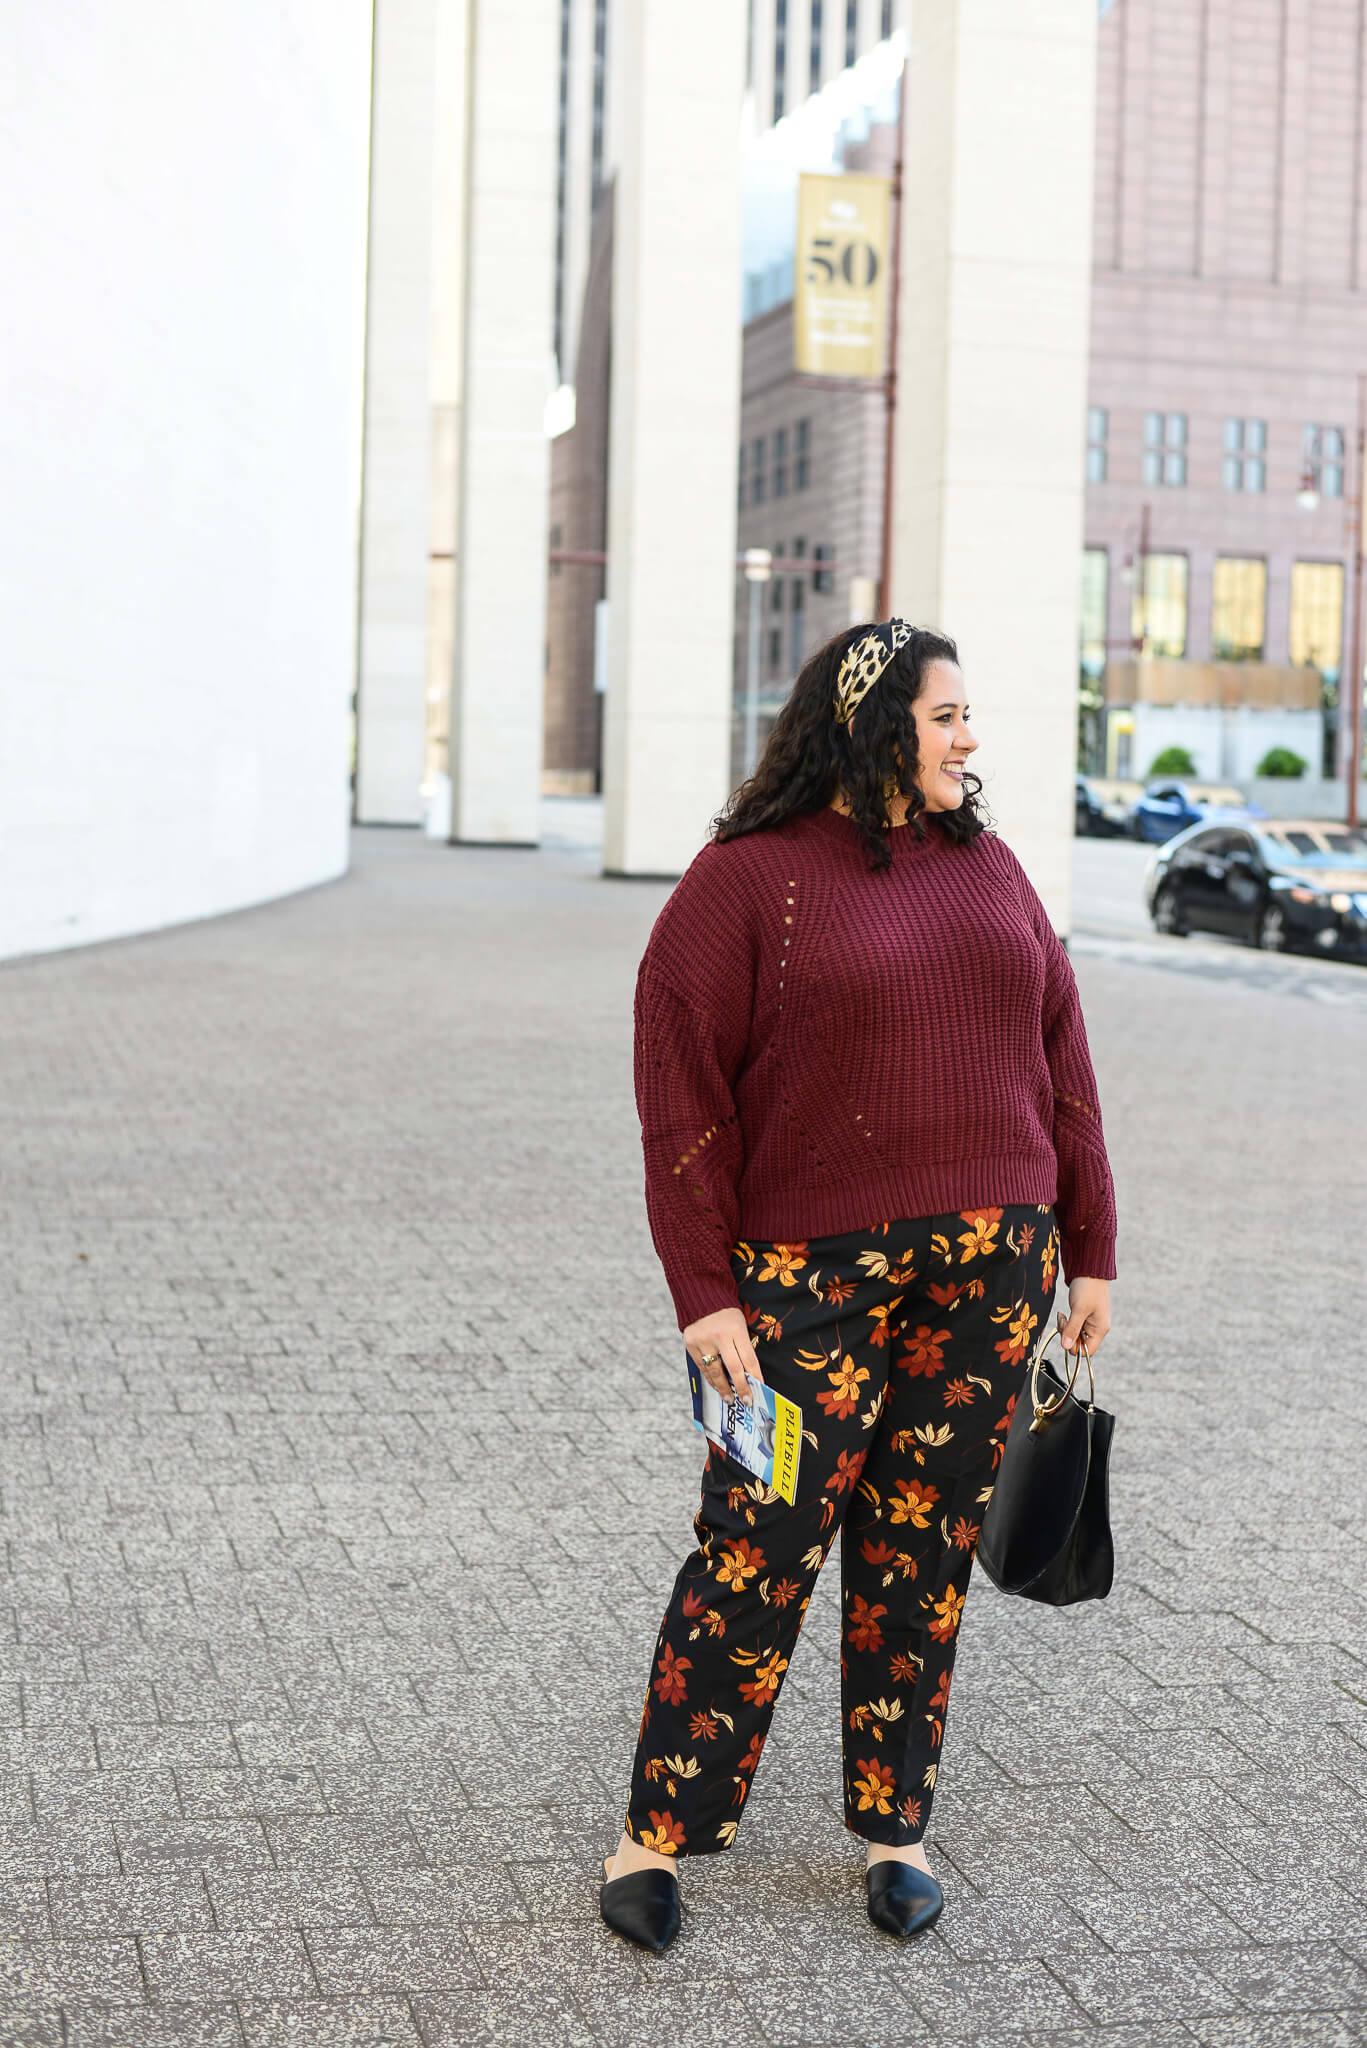 Going to the theater has always been one of my favorite things to do and the Eloquii Kady pants make for the perfect base for an outfit.